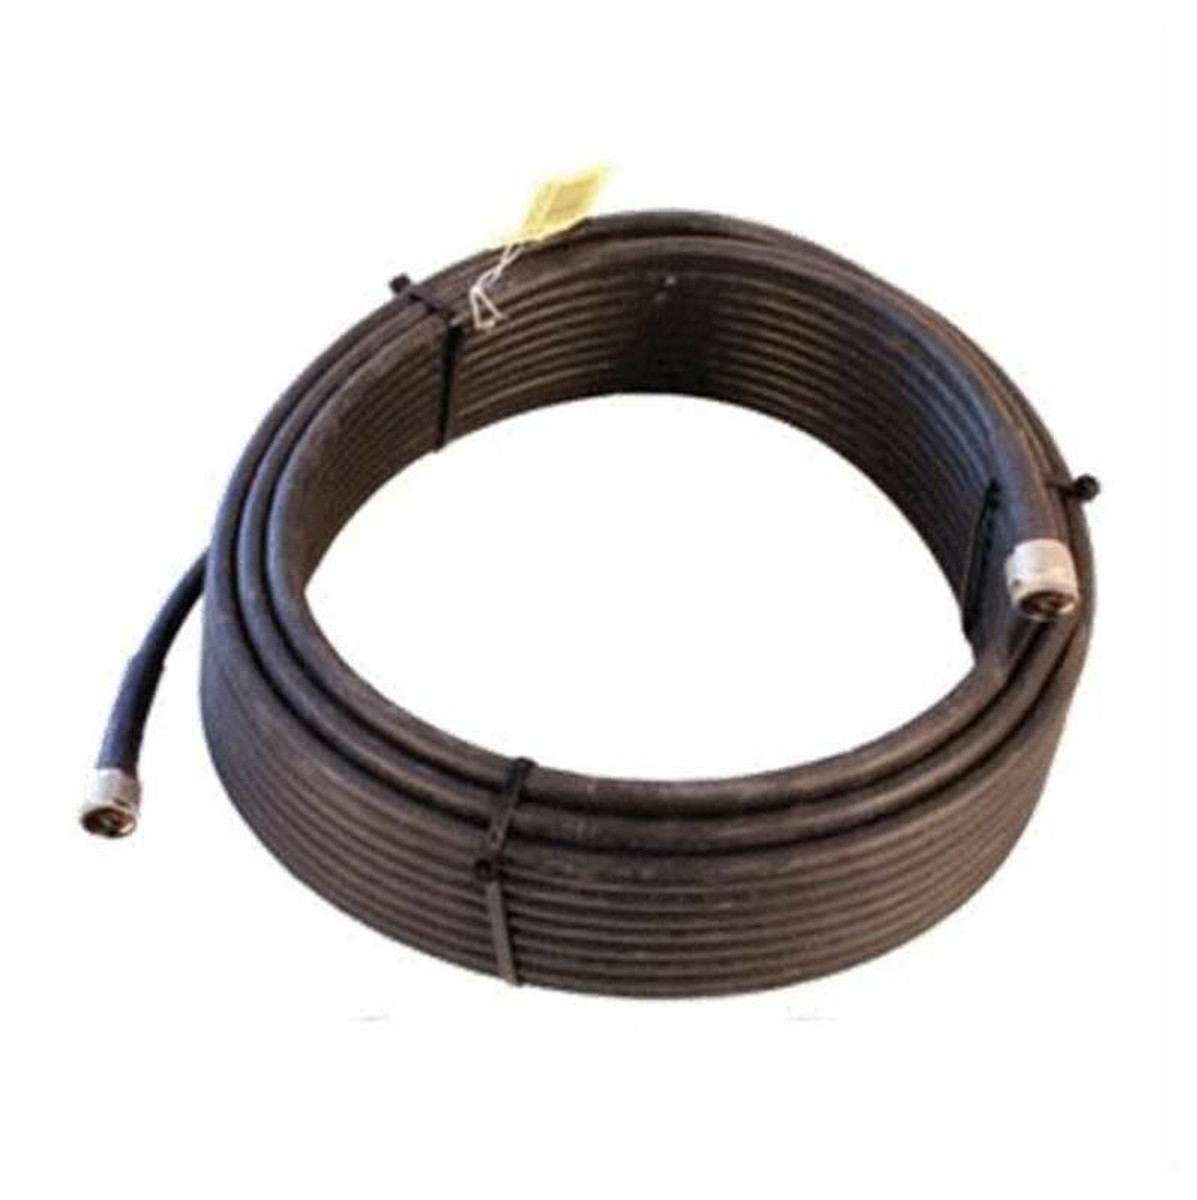 Wilson Electronics weBoost Wilson 952375 Wilson 400 N-Male to N-Male or 75 ft Black Cable